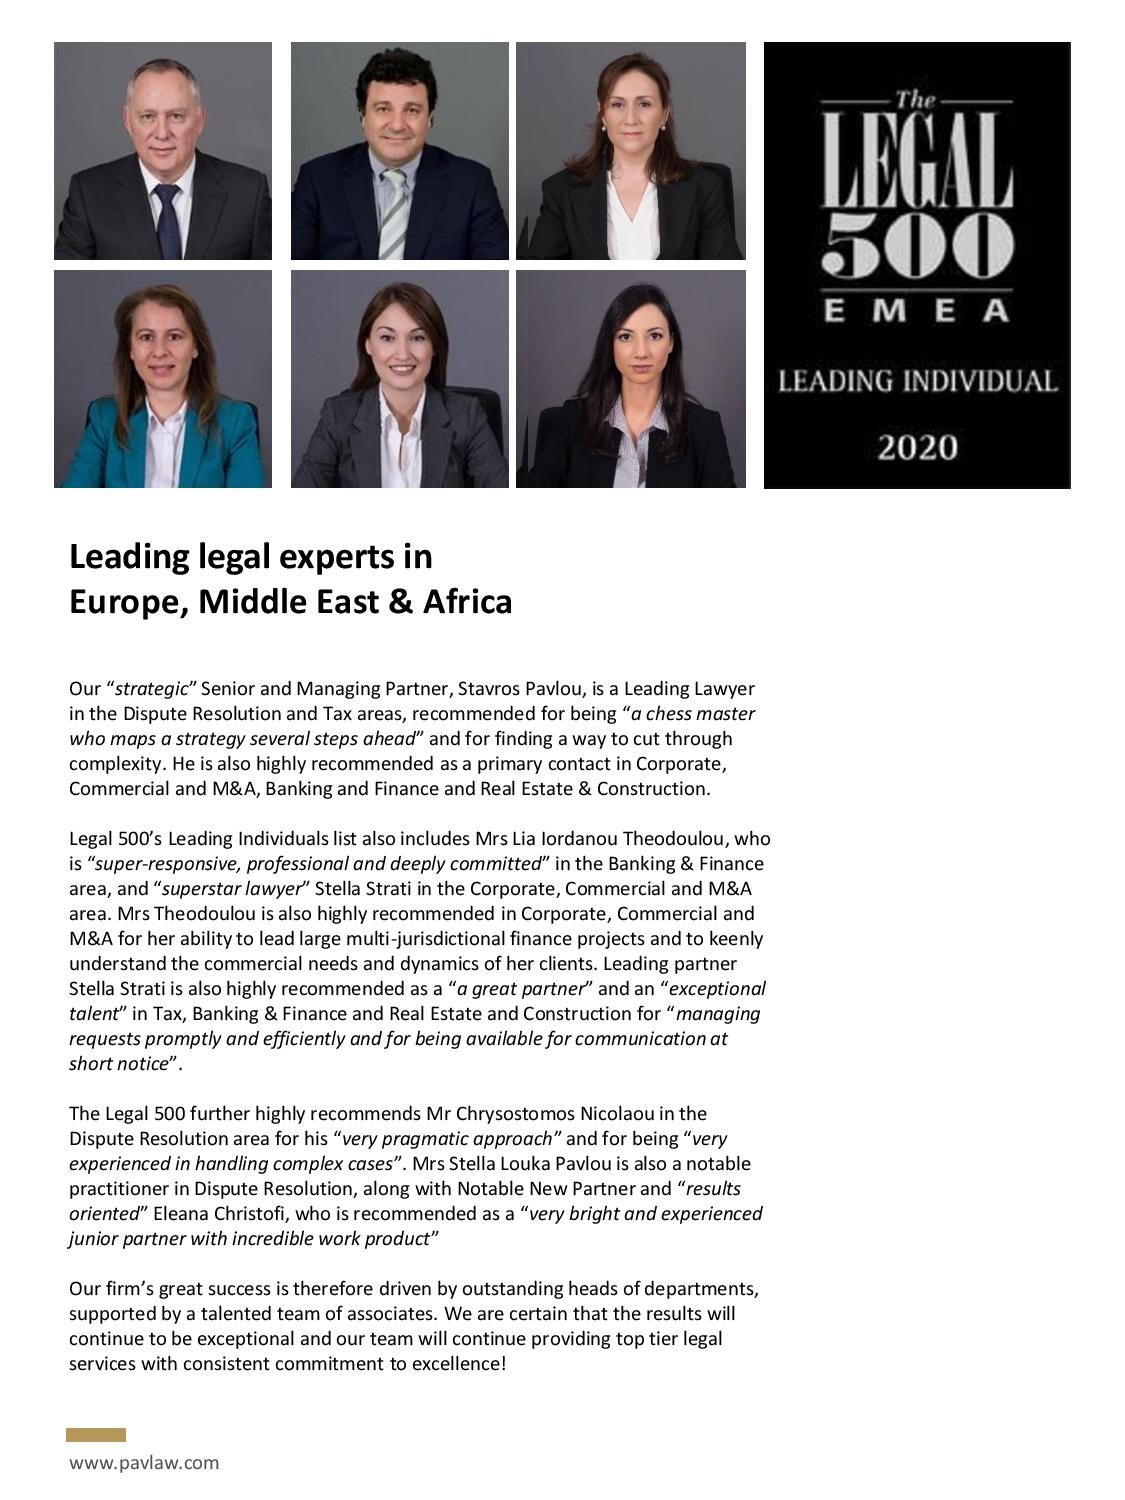 Patrikios Pavlou & Associates LLC: The Legal 500 - Leading legal experts in Europe, Middle East & Africa